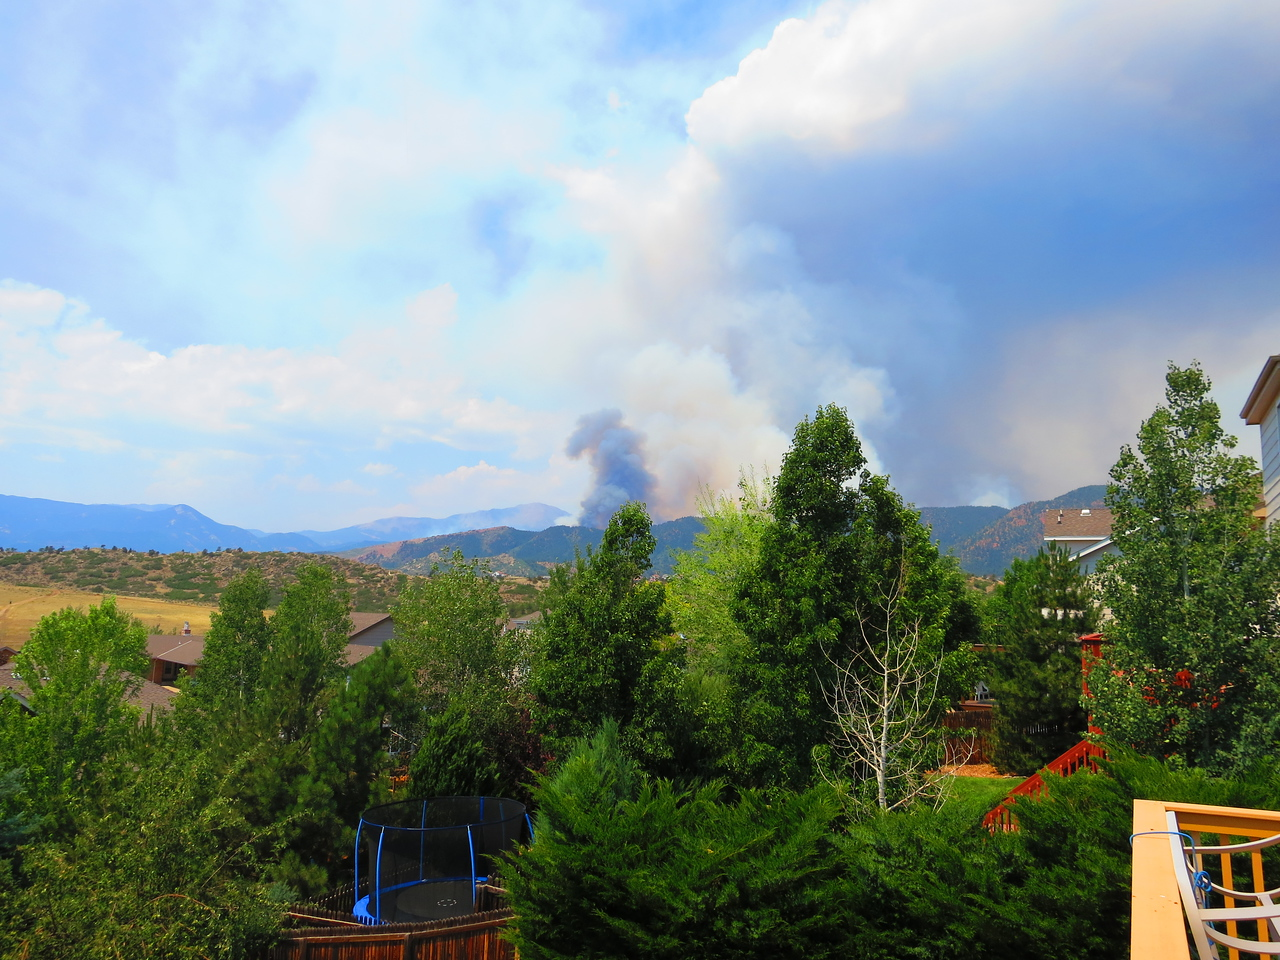 View SW from my back deck: Sunday, June 24th - 11:30 am. Pikes Peak summit just left of dark smoke.